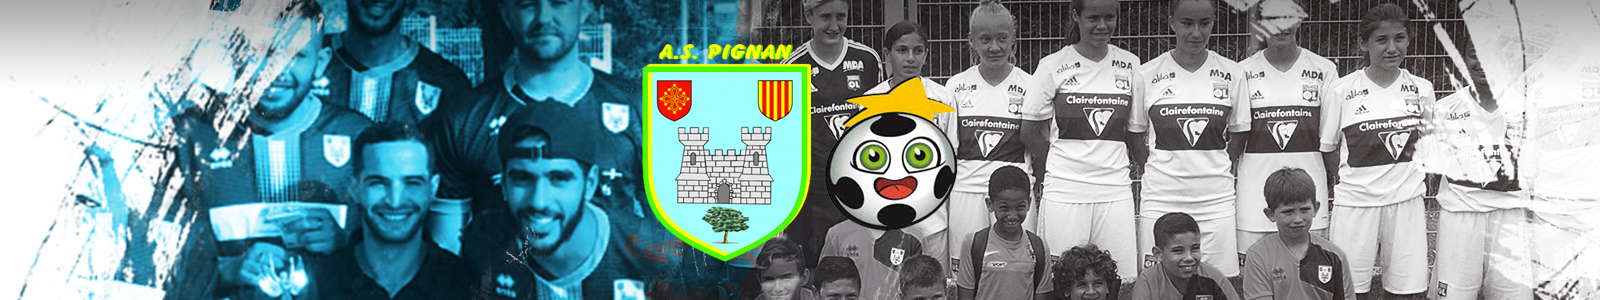 AS - PIGNAN : site officiel du club de foot de PIGNAN - footeo